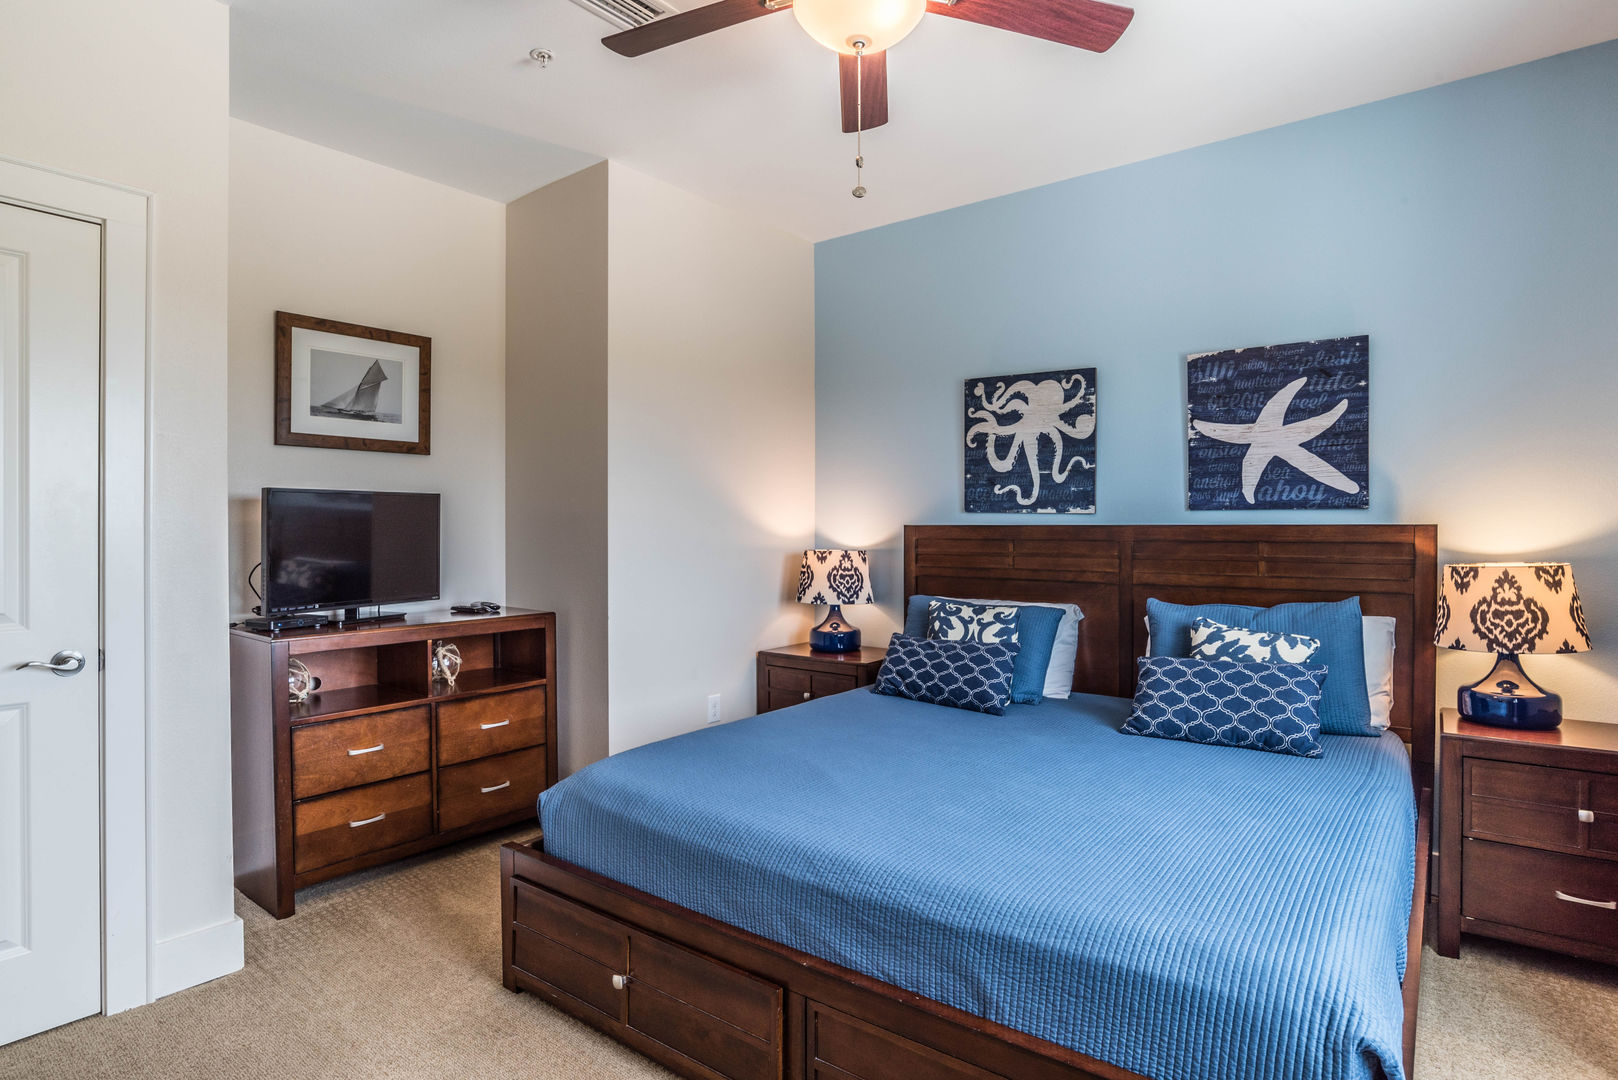 Additional Guest Room with Nautical Theme